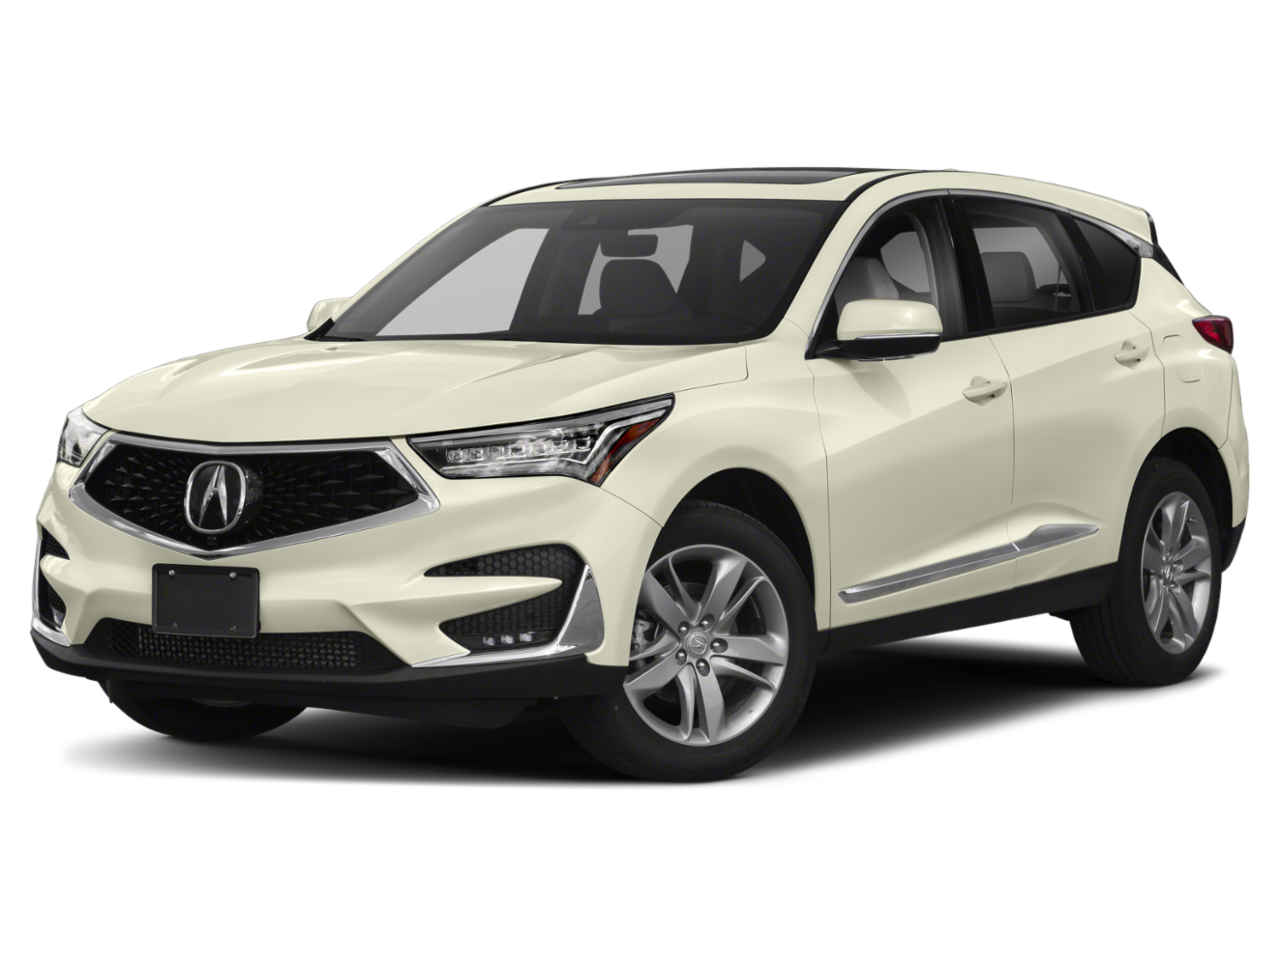 Buyer's Guide: 2019 Acura RDX